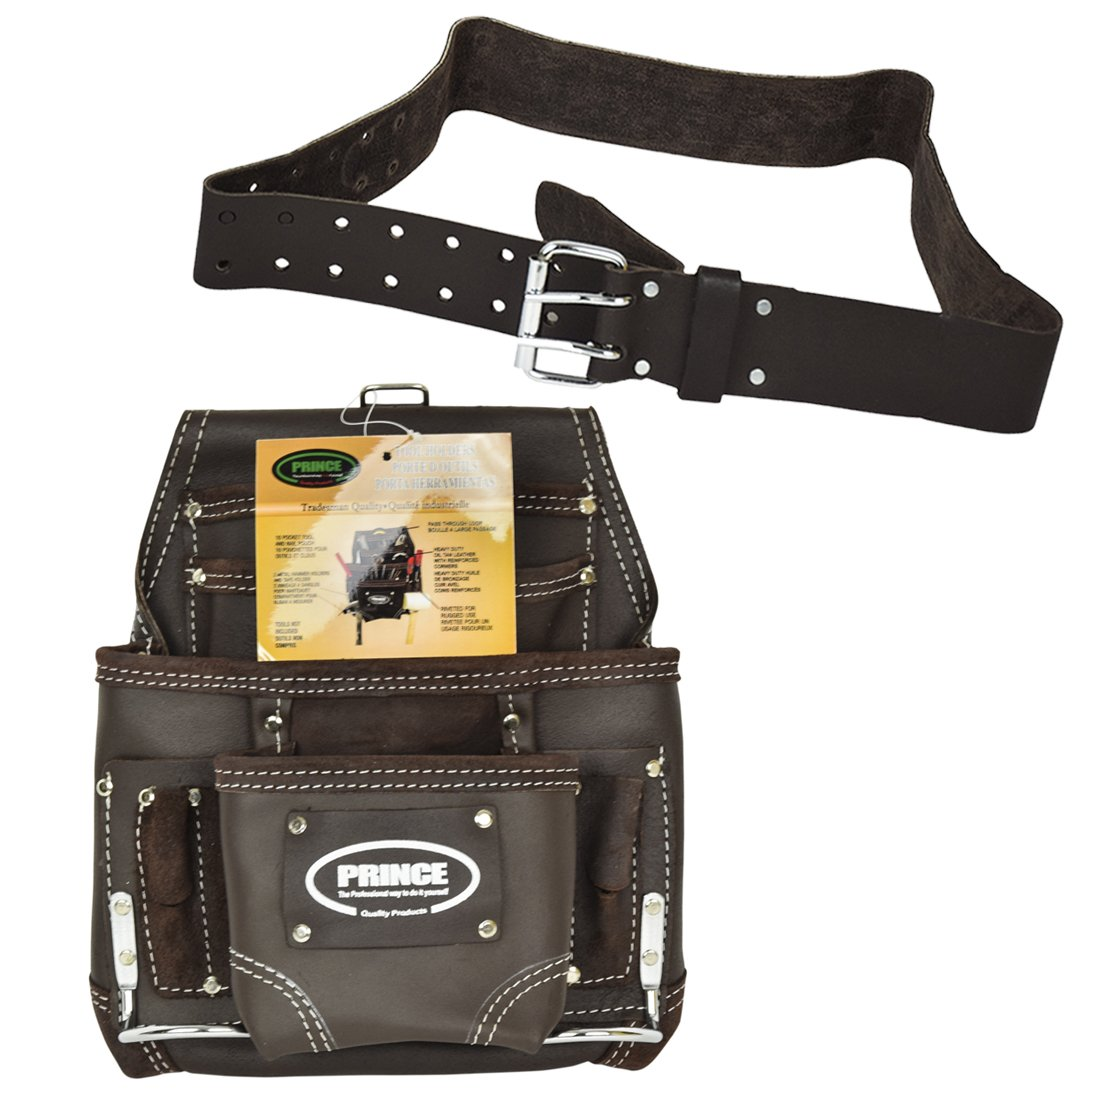 Prince Logo Bundle- 10 Pocket Oil Tanned Leather Nail and Tool Pouch with 2'' Double Pin Work Belt- (2 Piece Set)